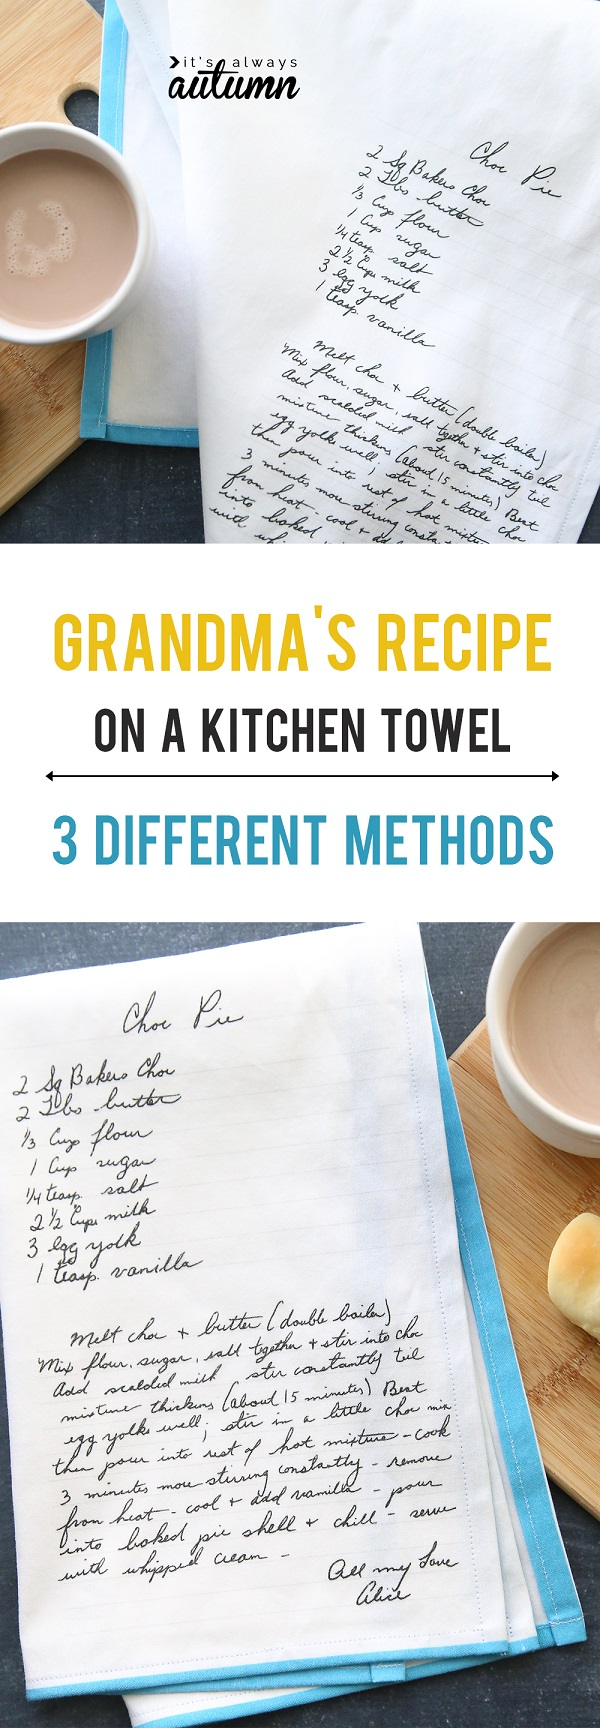 Tutorial: 3 ways to put a handwritten recipe on a tea towel